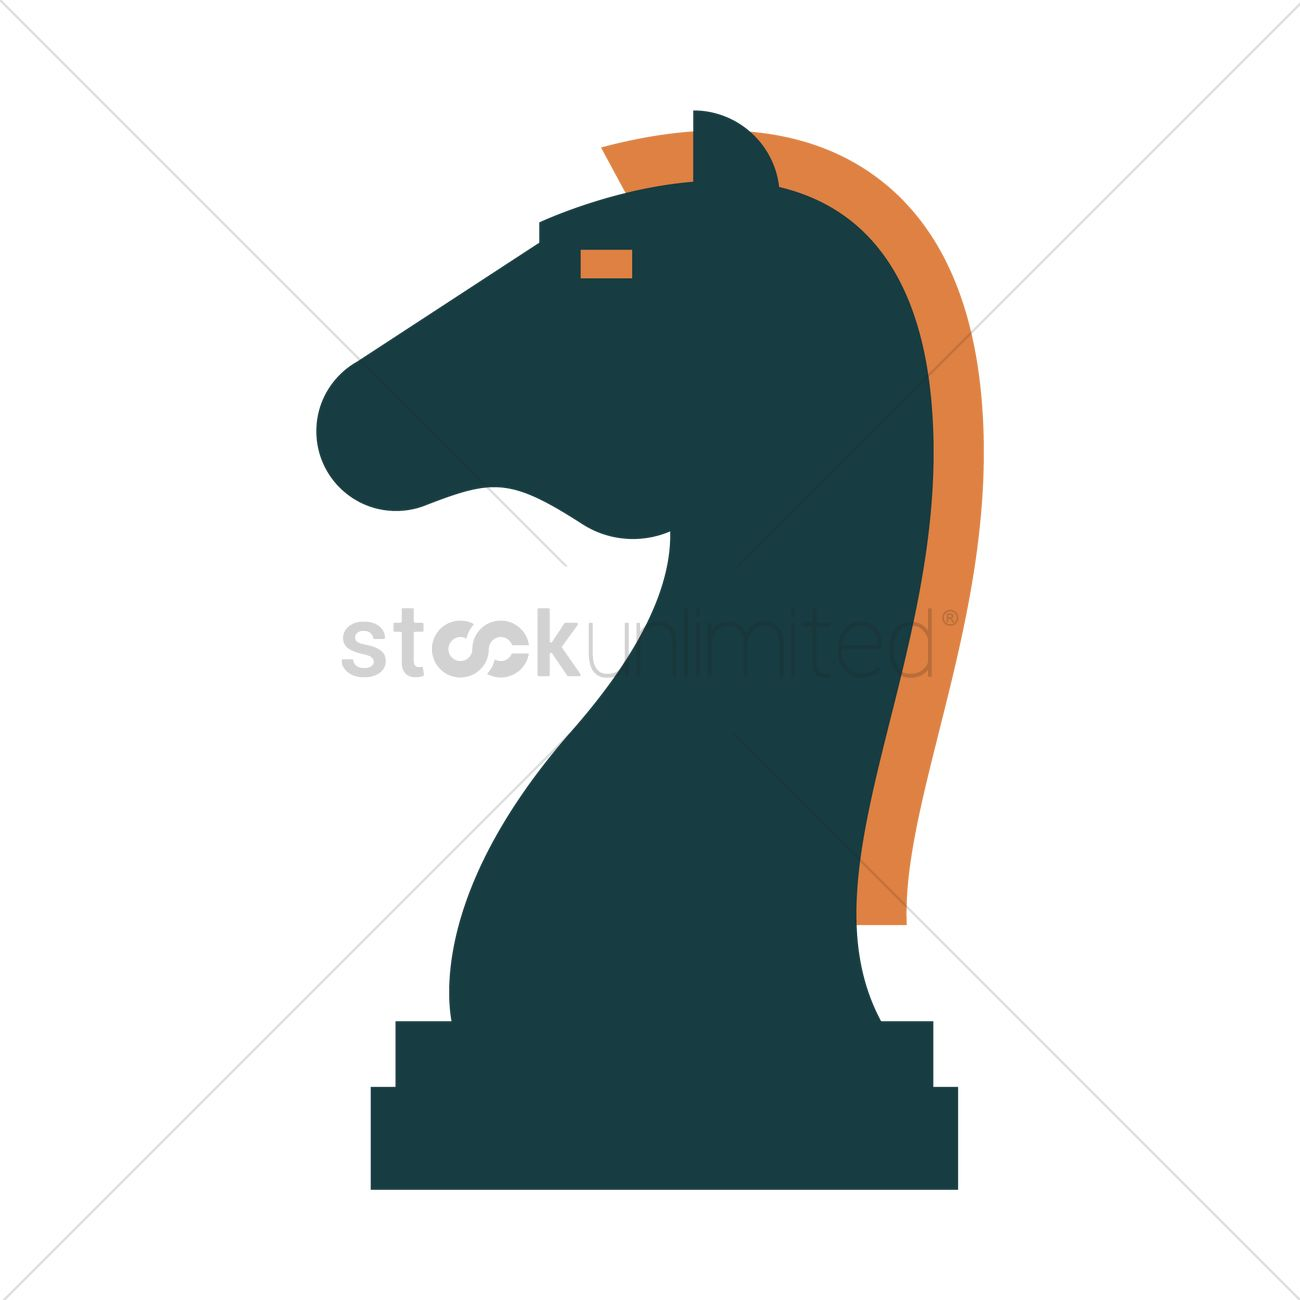 Knight chess piece icon Vector Image - 1898121 | StockUnlimited